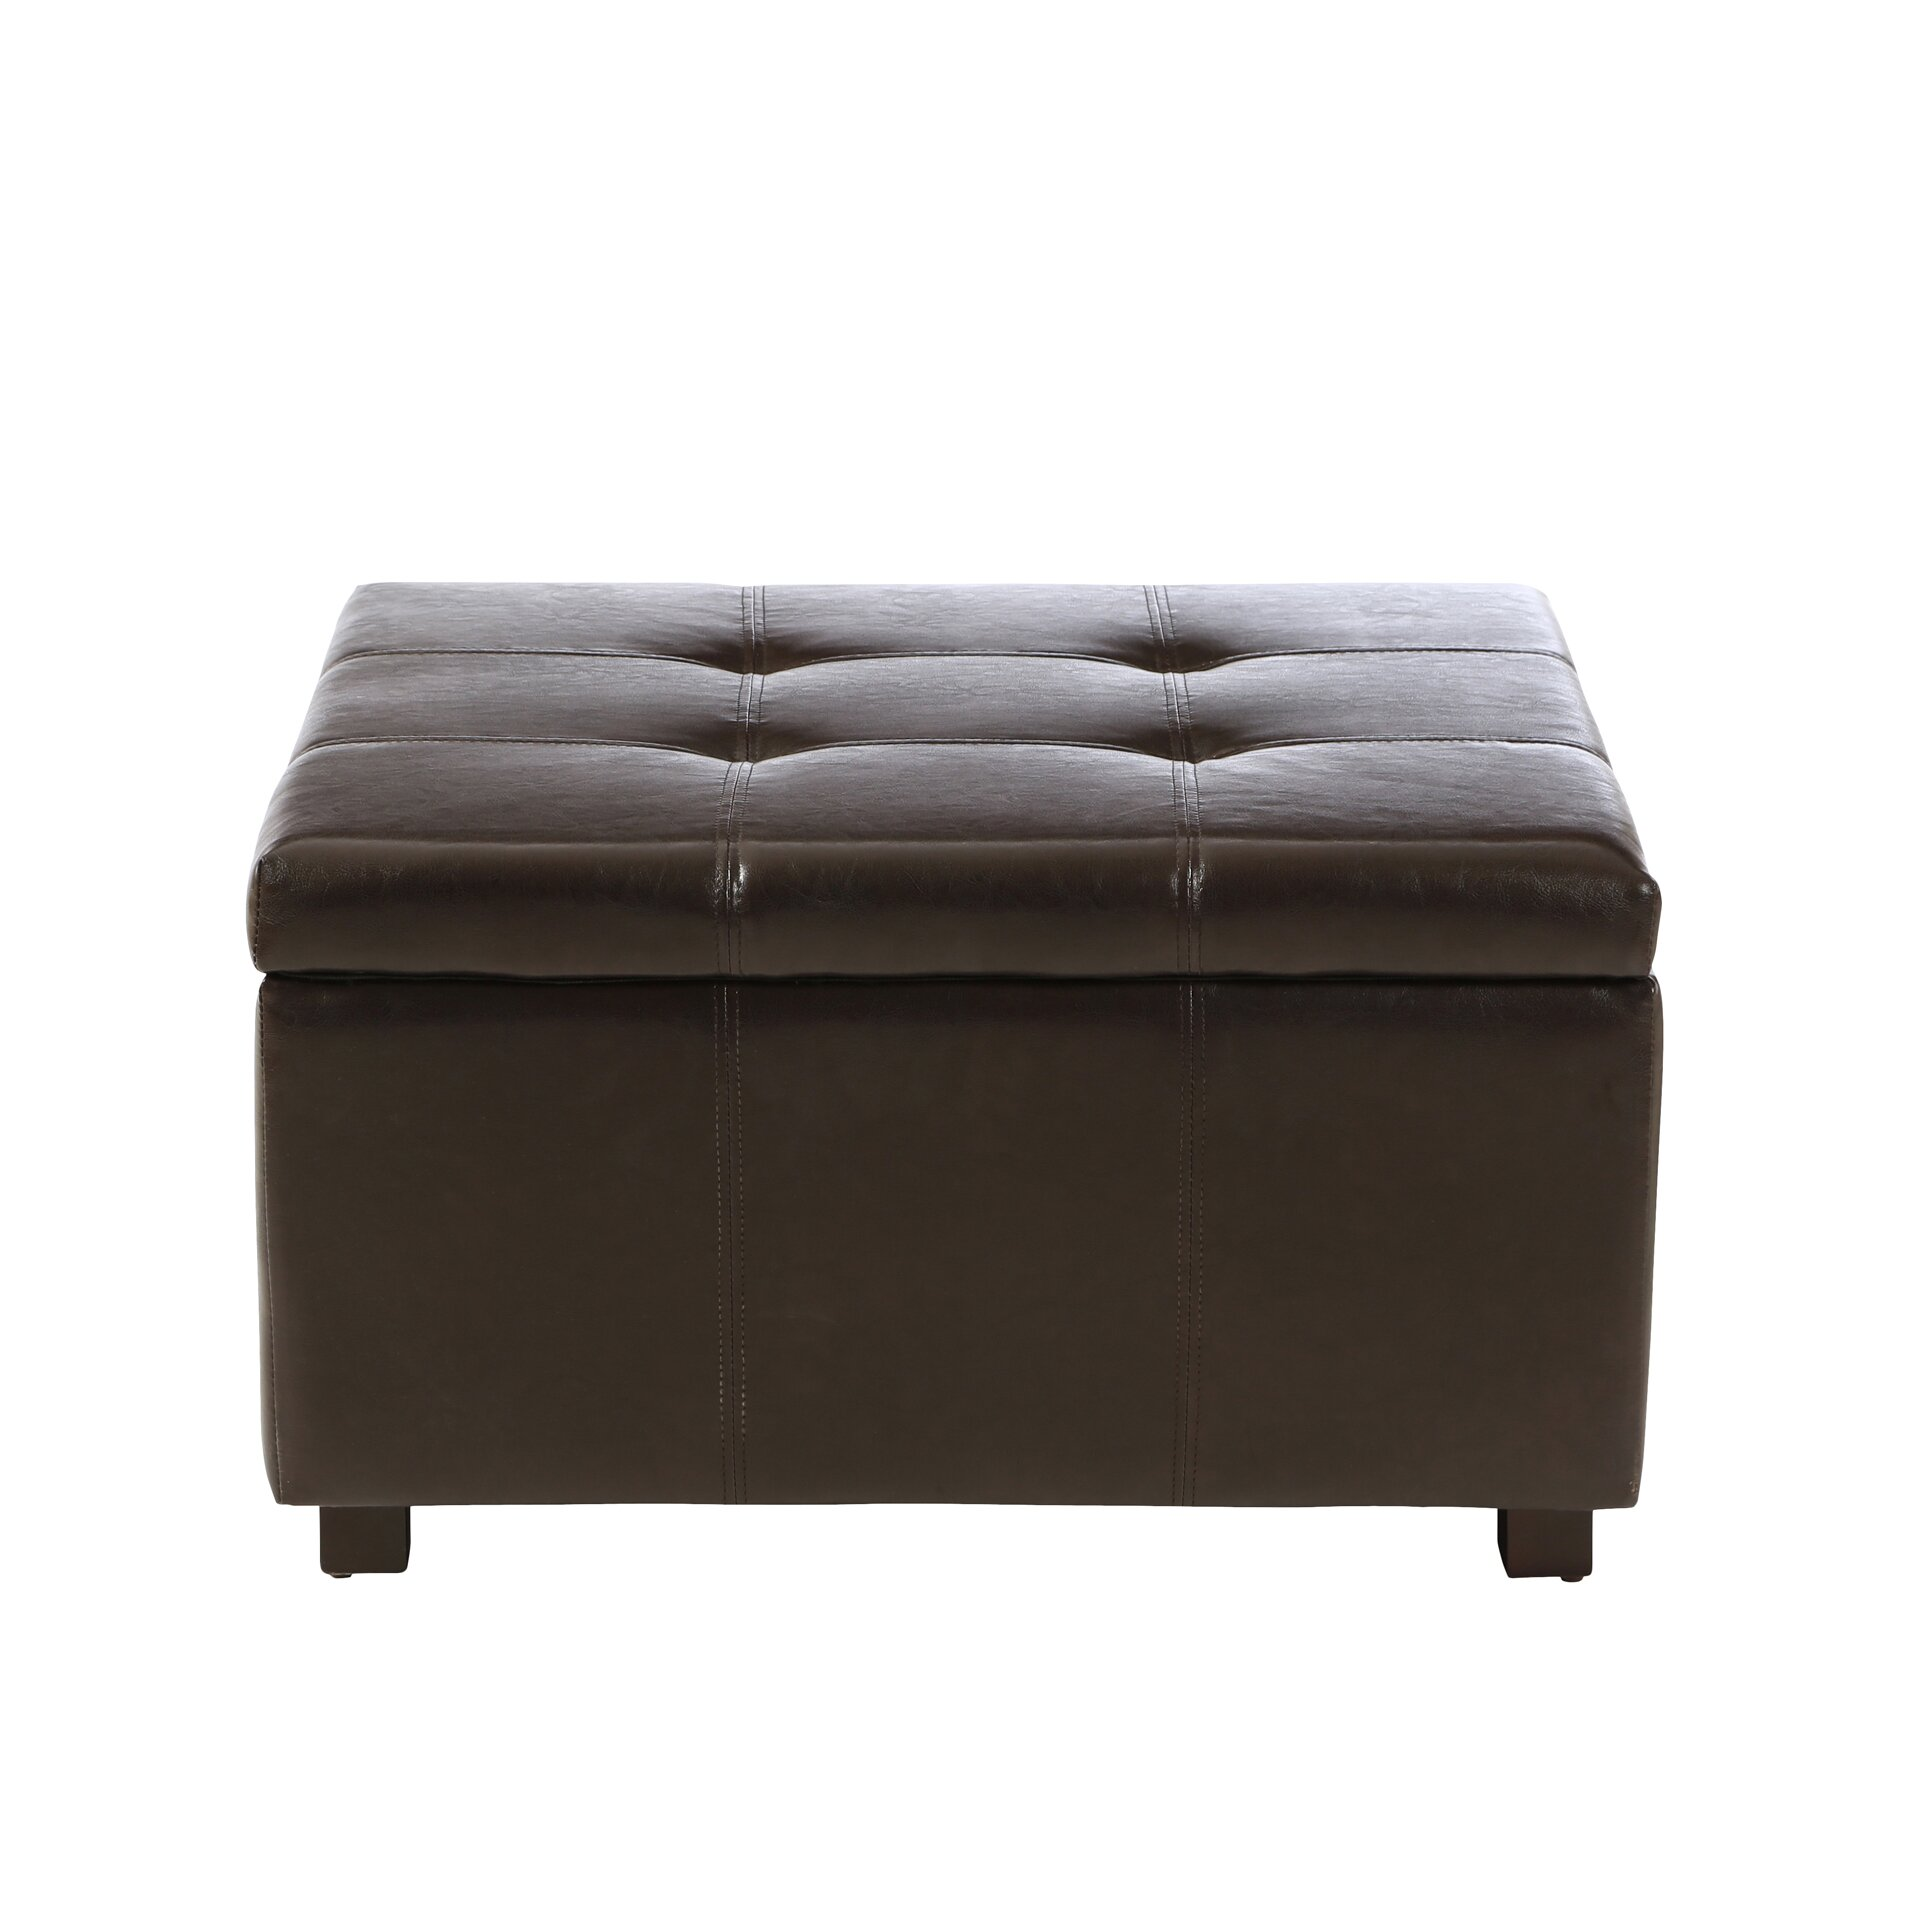 Three Posts Polycarp Storage Ottoman Reviews: Ehlert Faux Leather Storage Ottoman